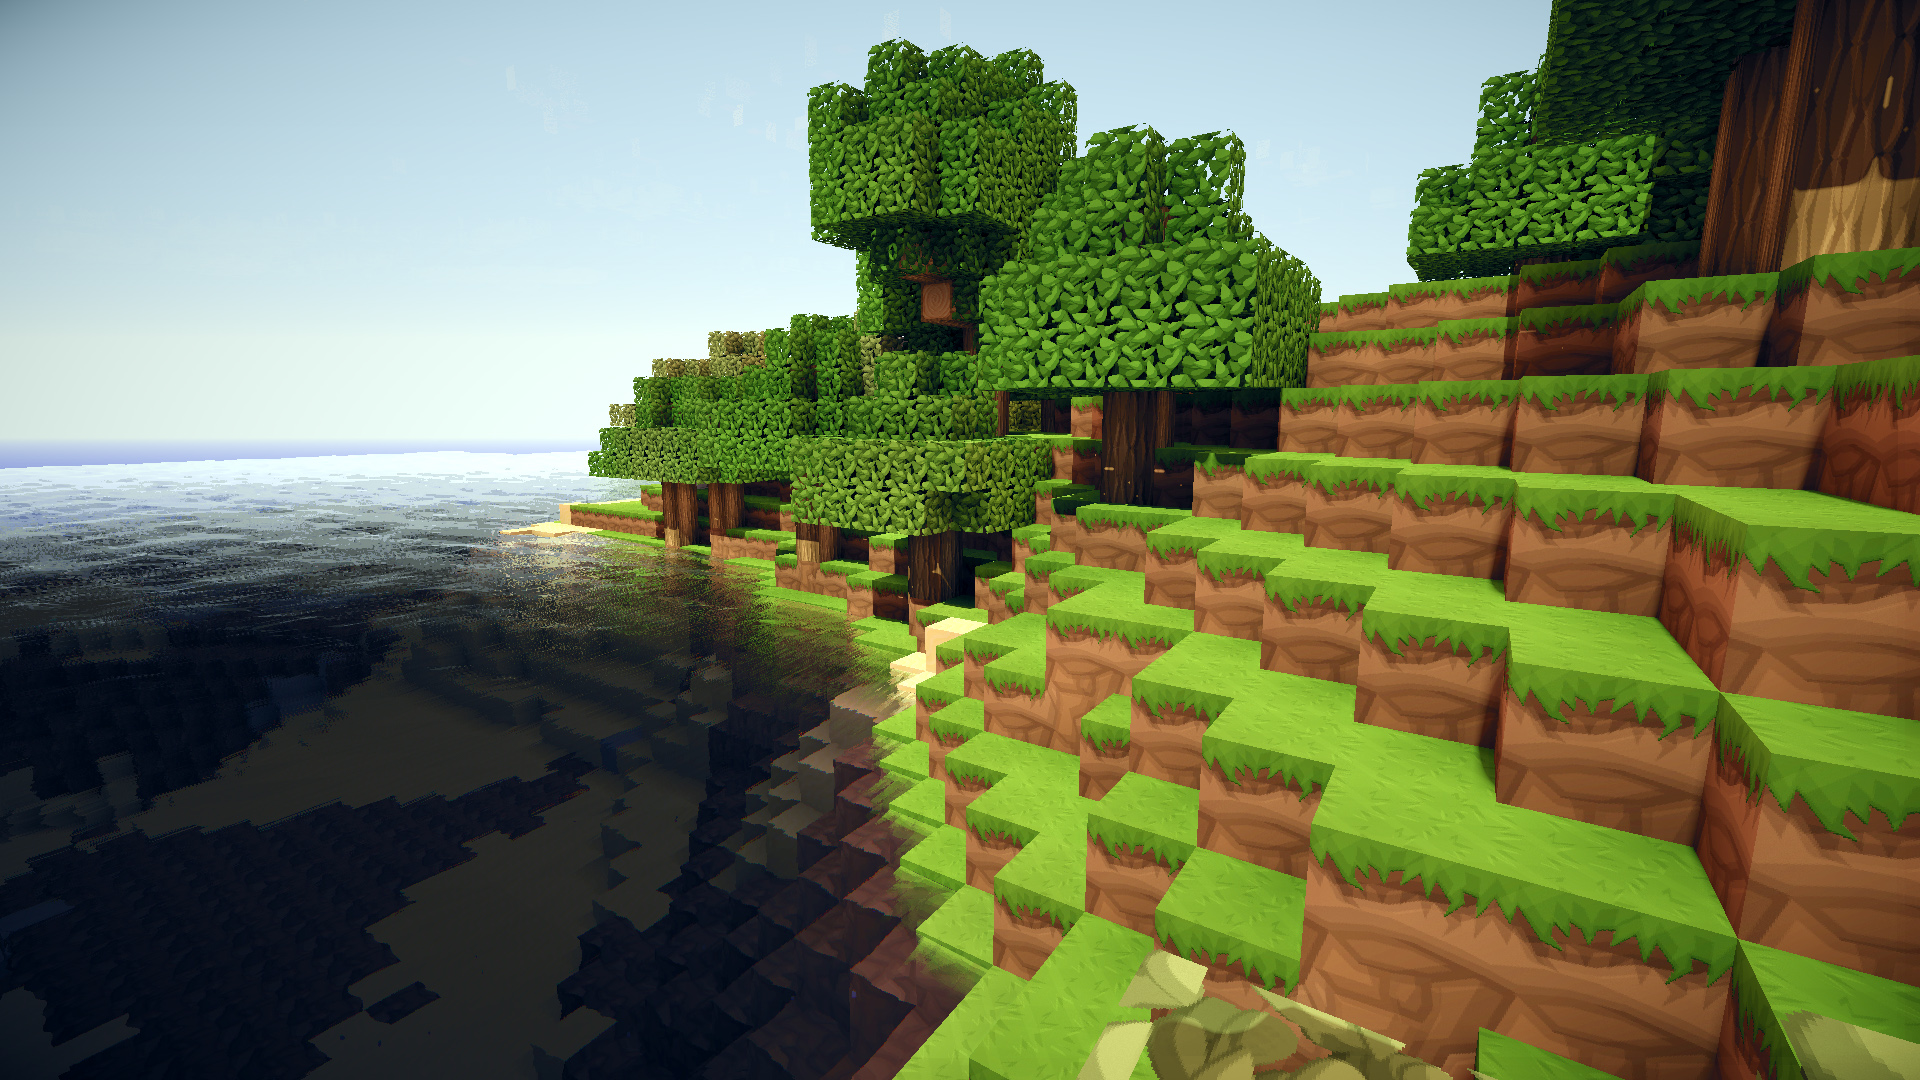 Minecraft Hd Wallpaper Background Image 1920x1080 Id